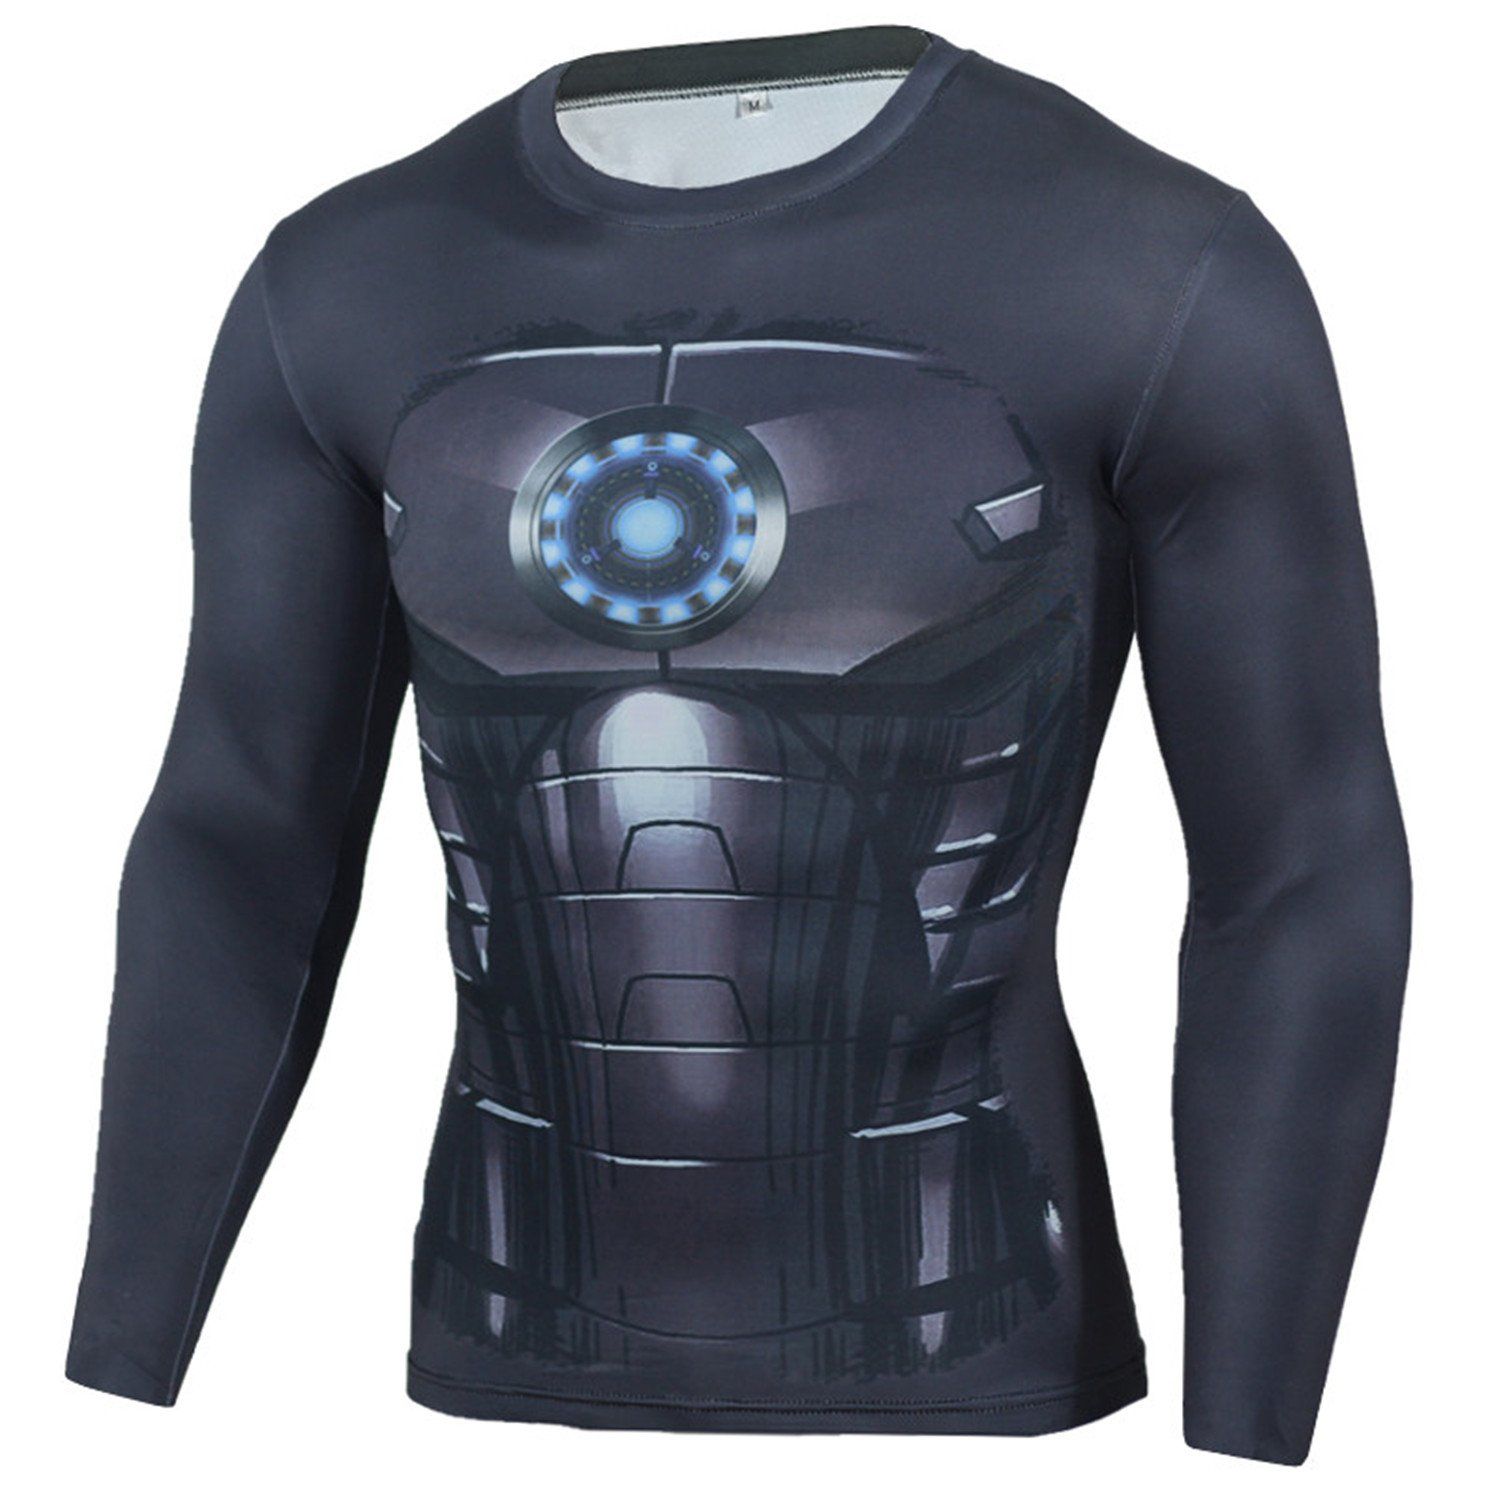 CLSND 3D Fitness Men Crossfit T-Shirt Long Sleeve Compression Shirt Soft at Amazon Mens Clothing store: